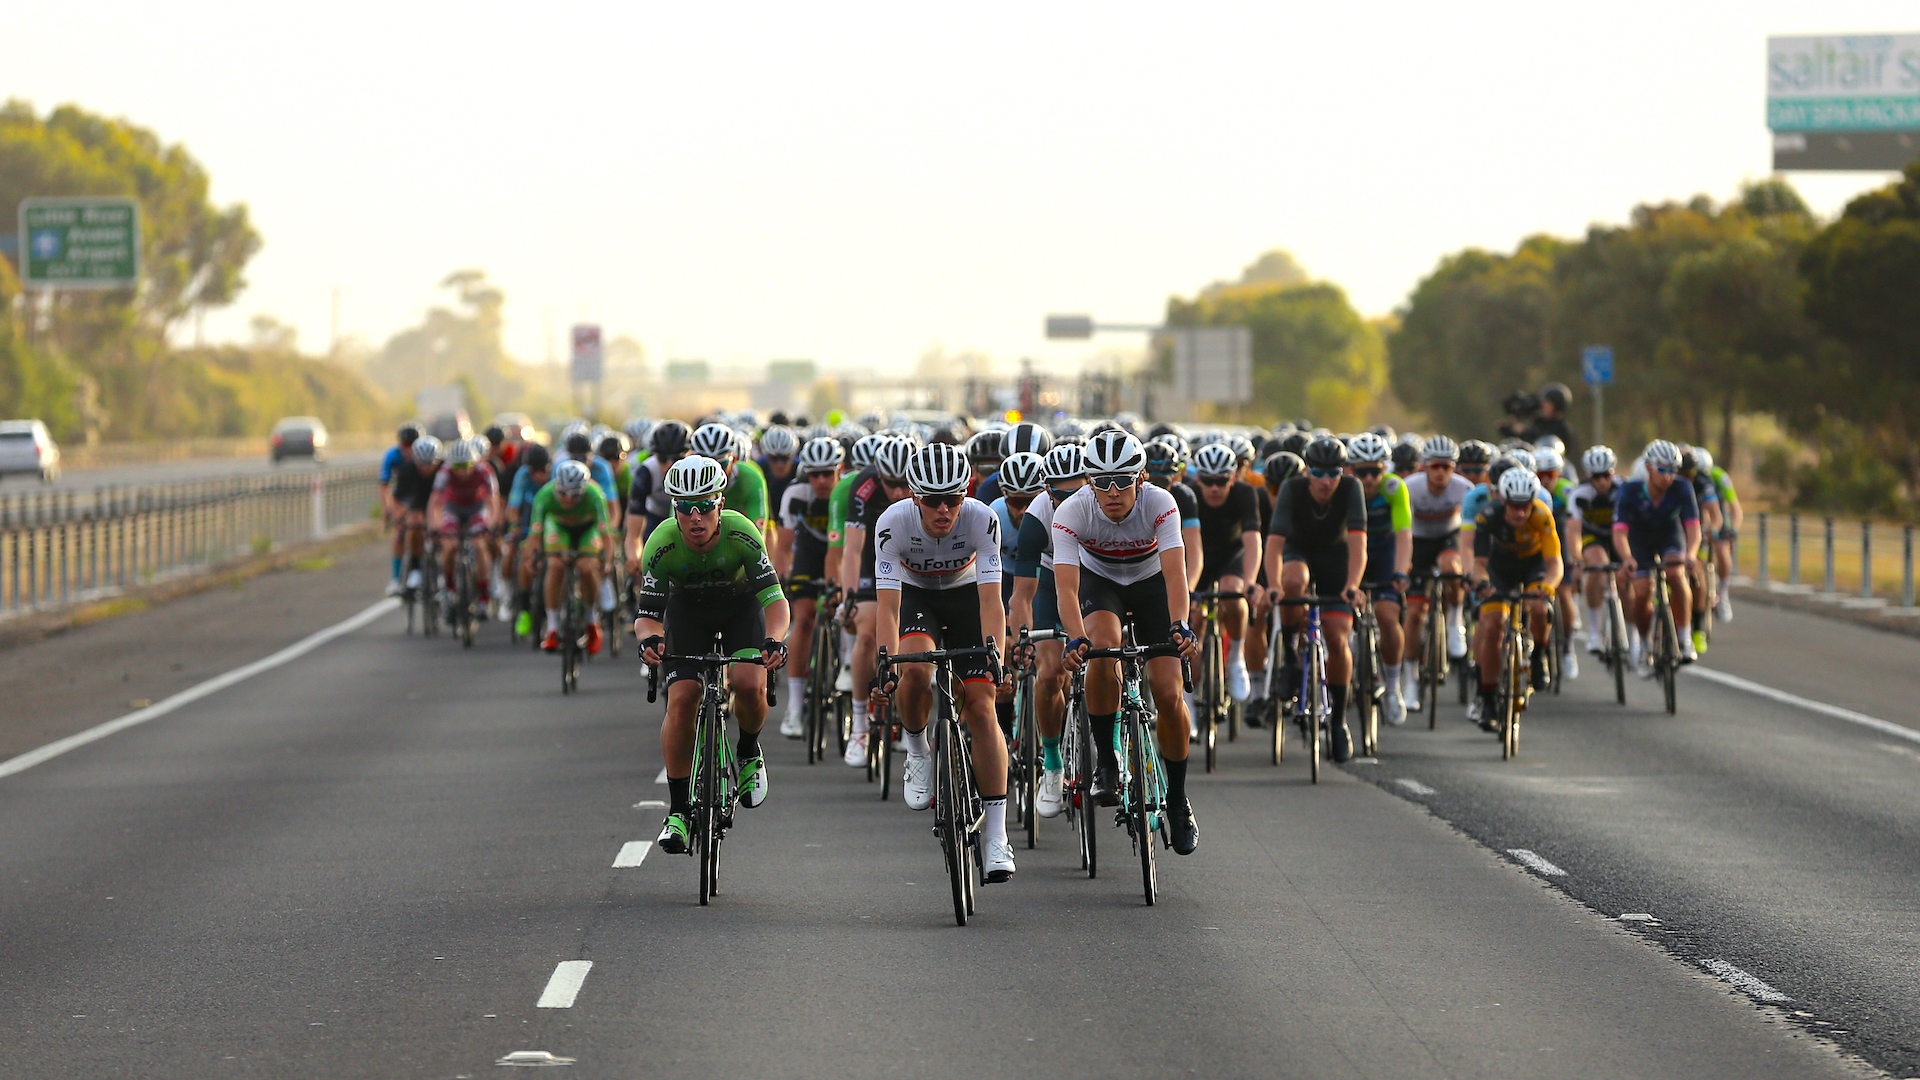 New date announced for postponed Melbourne to Warrnambool